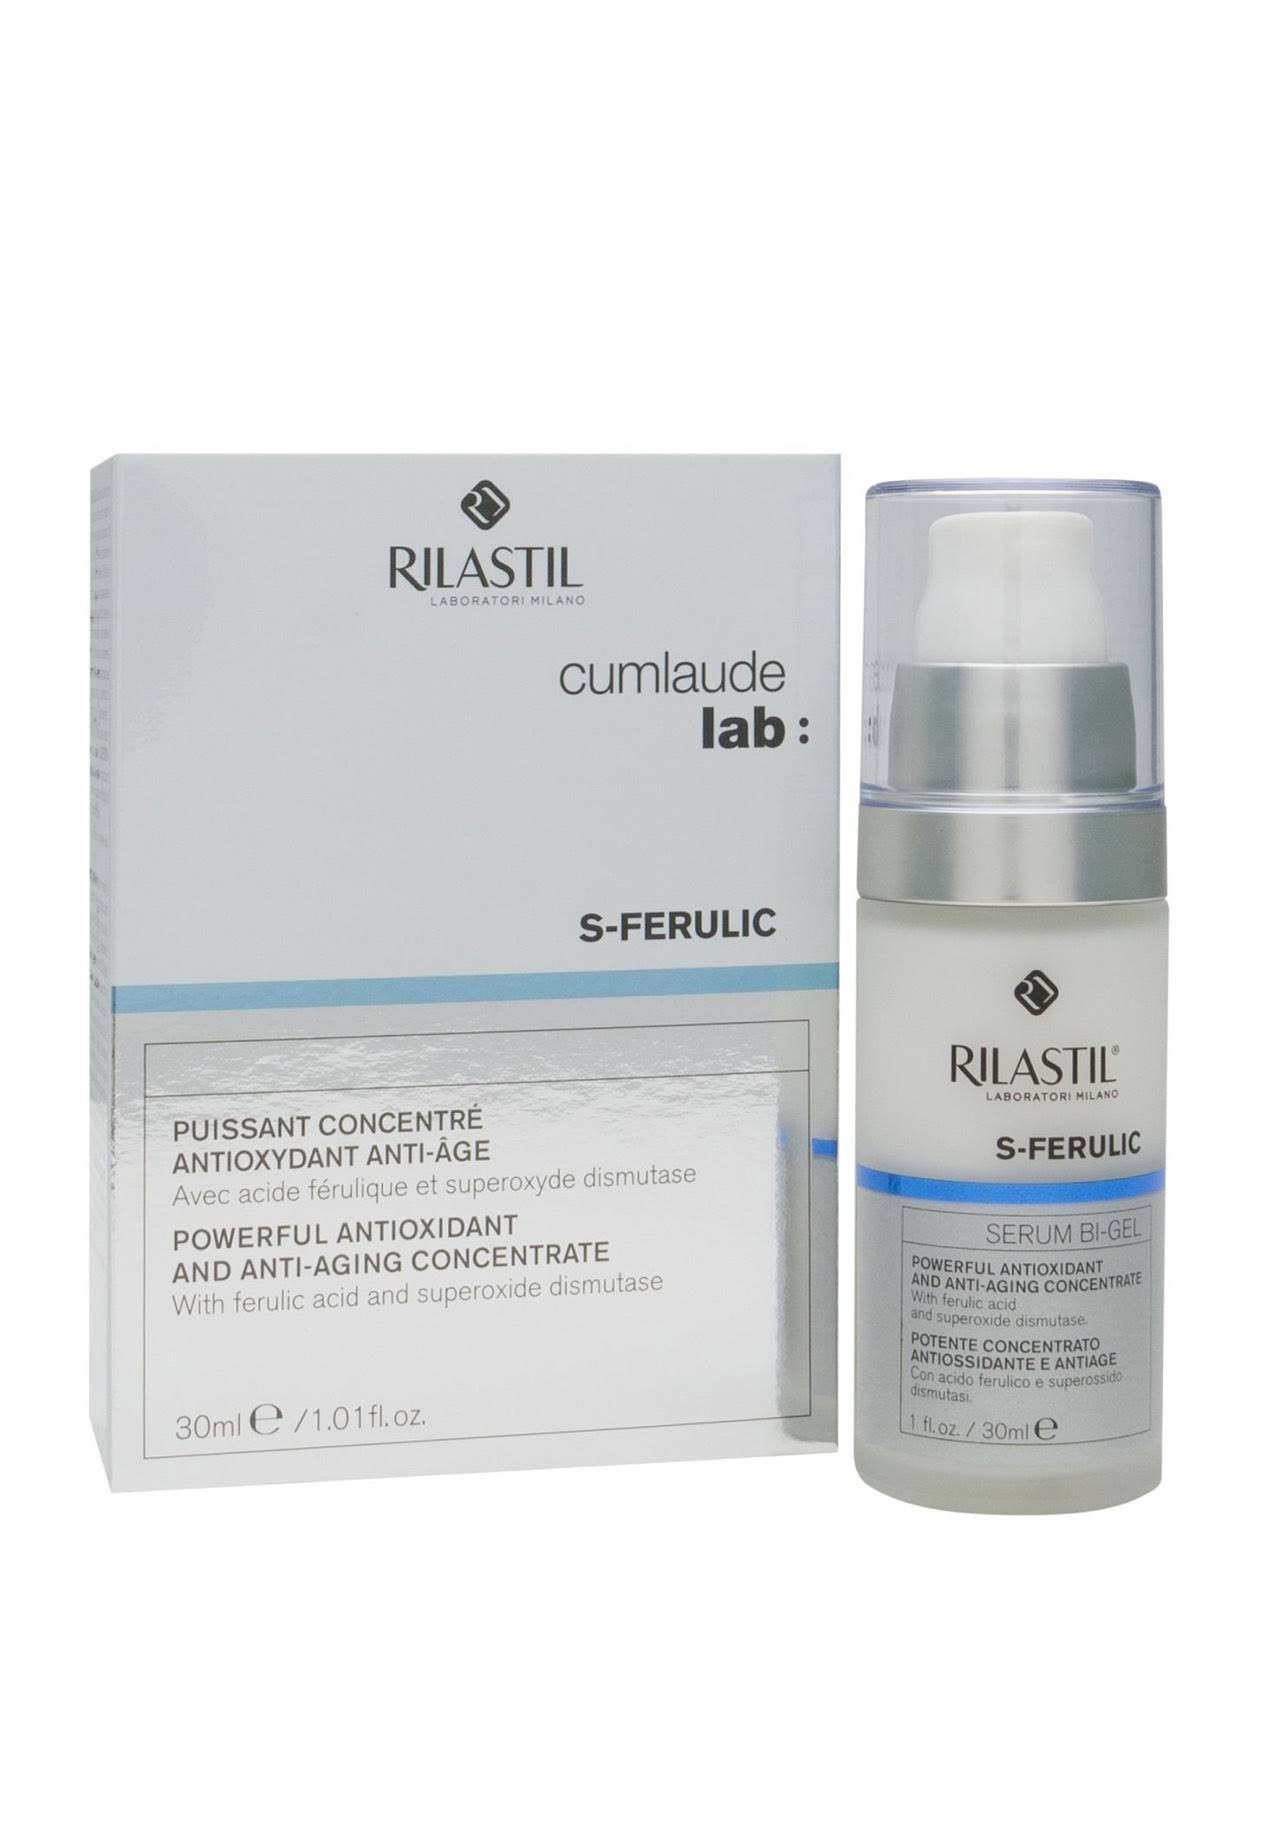 Cosmetics Superoxide Dismutase concentrate Rilastil S-Ferulic from Cumlaude Lab